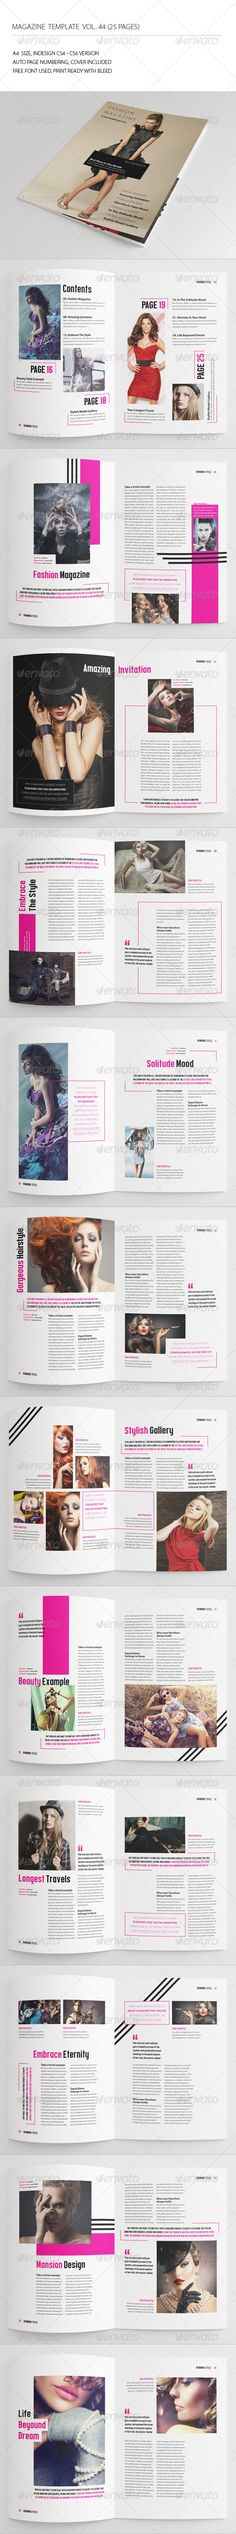 25 Pages Fashion Magazine Vol44 — InDesign INDD #fashionable #stylish • Available here → https://graphicriver.net/item/25-pages-fashion-magazine-vol44/7457822?ref=pxcr